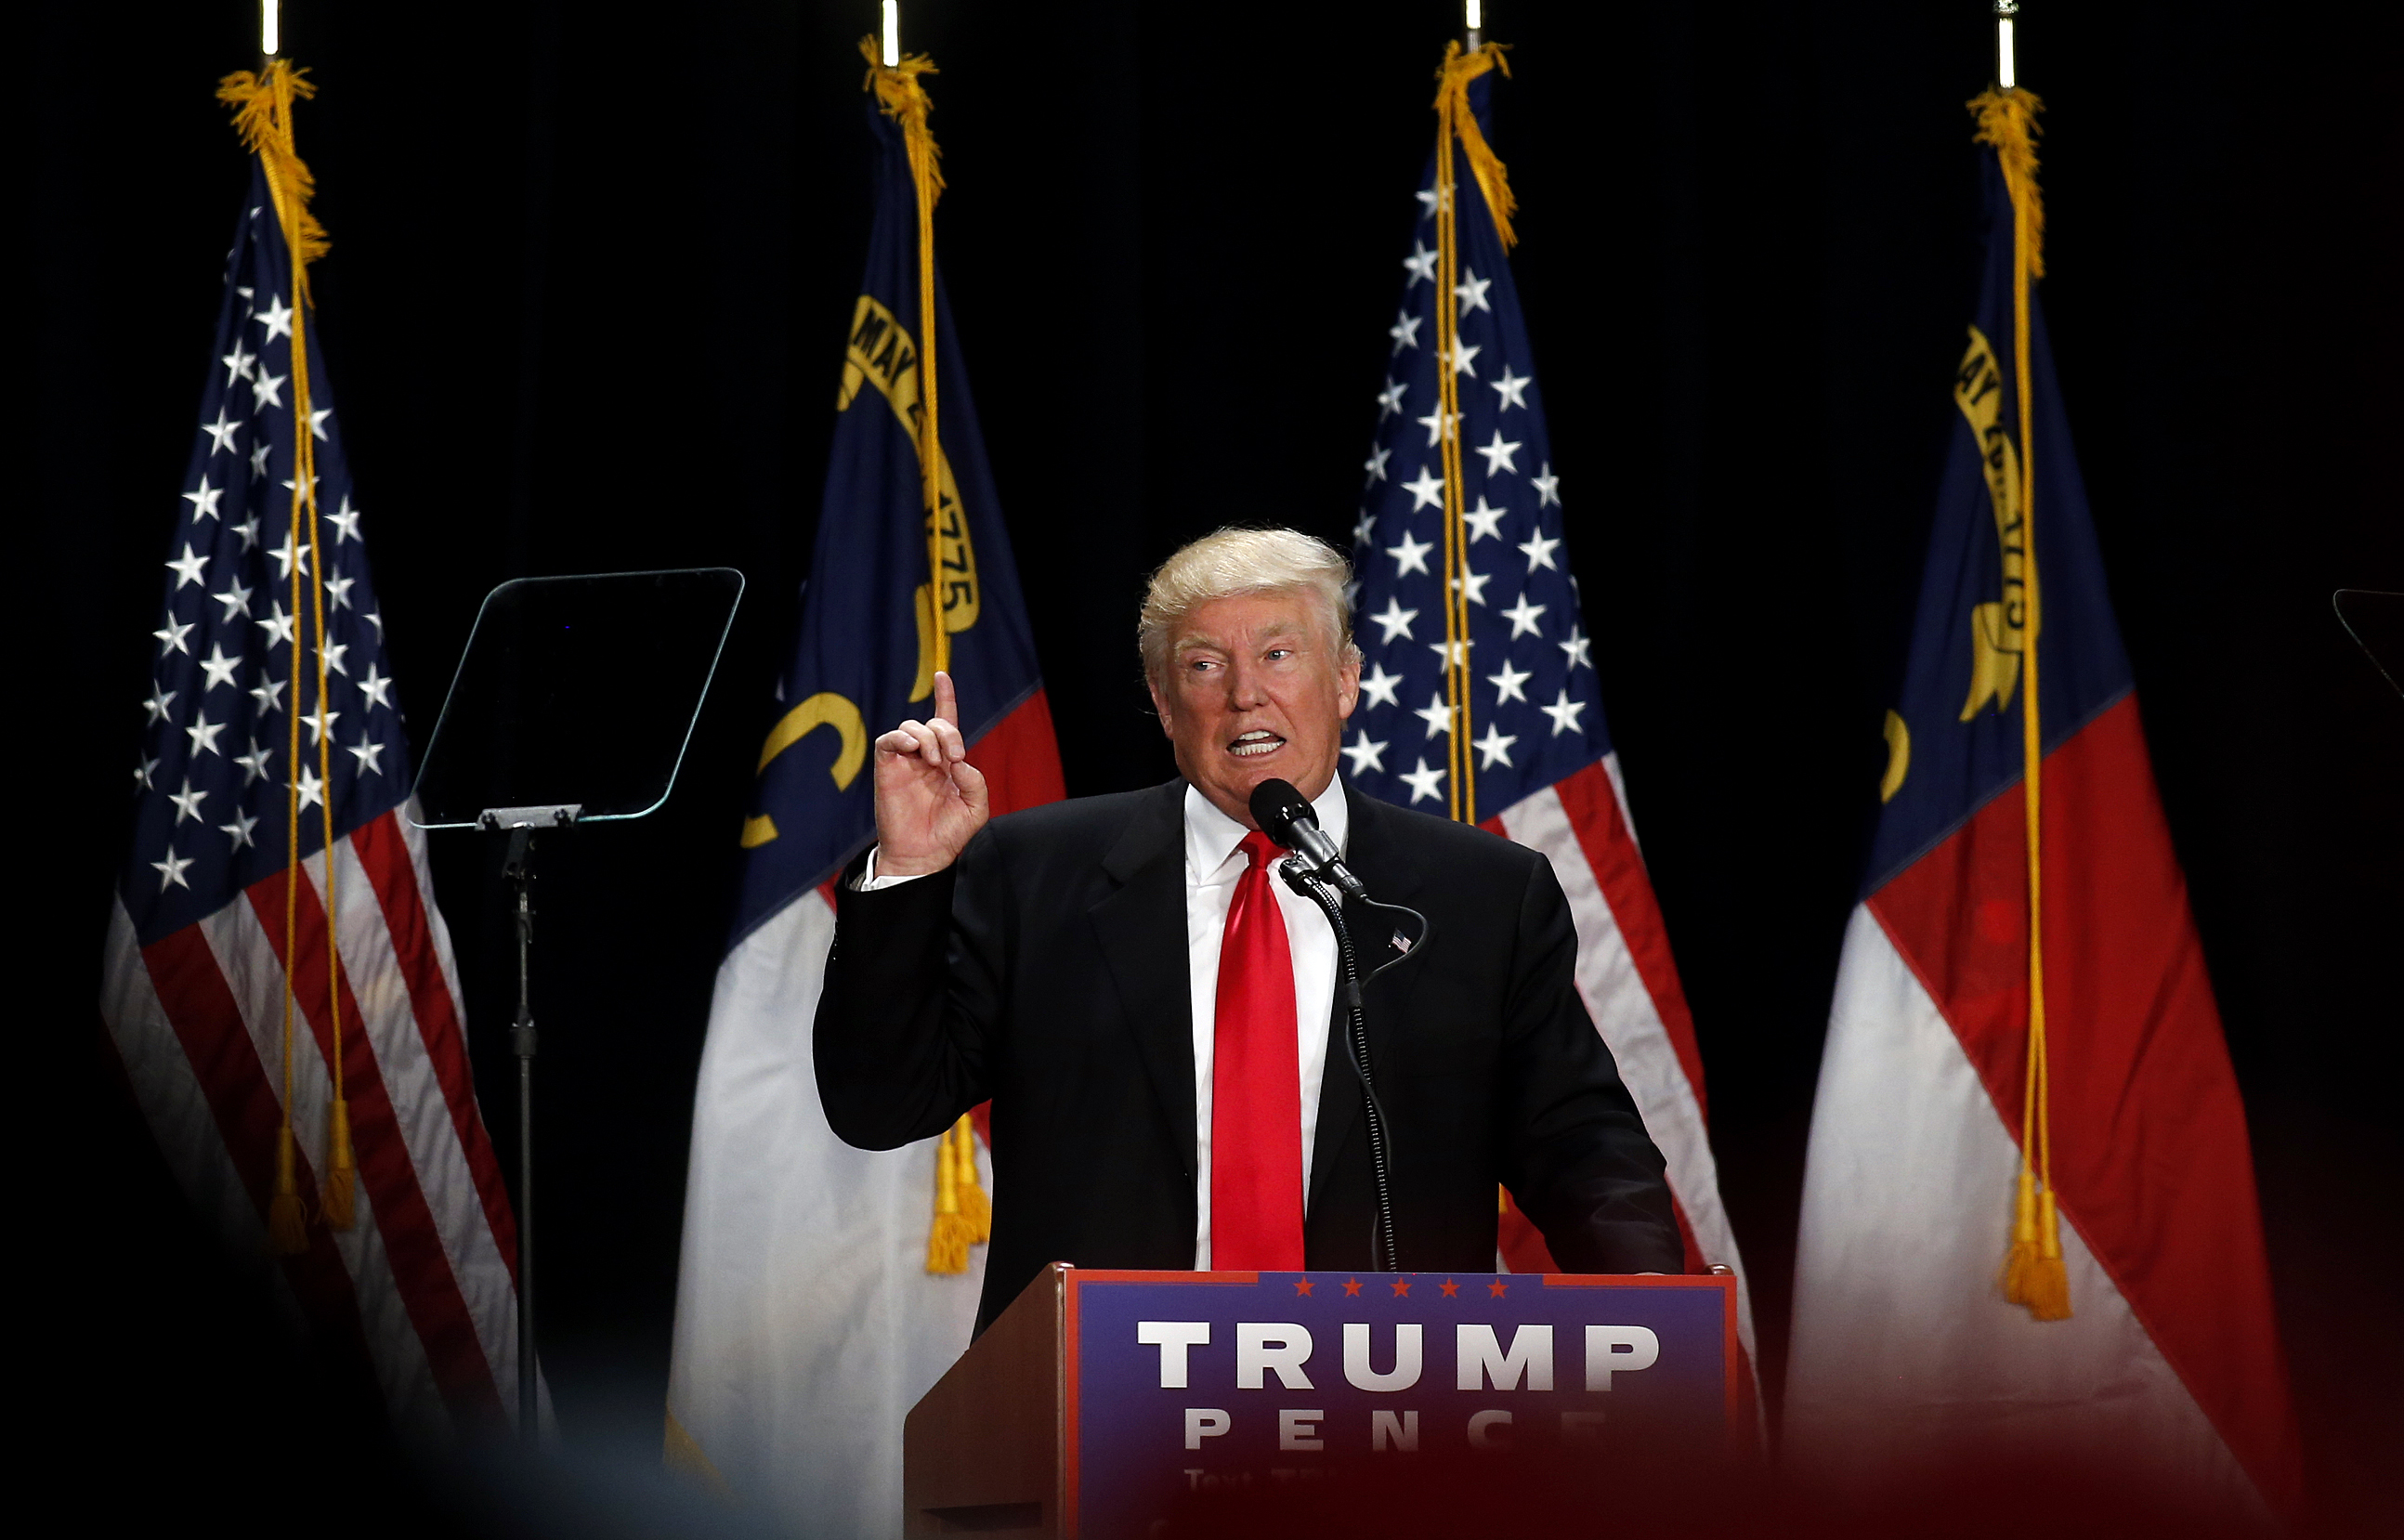 Donald Trump speaks to supporters at a rally at the Charlotte Convention Center in Charlotte, NC, Aug. 18, 2016.